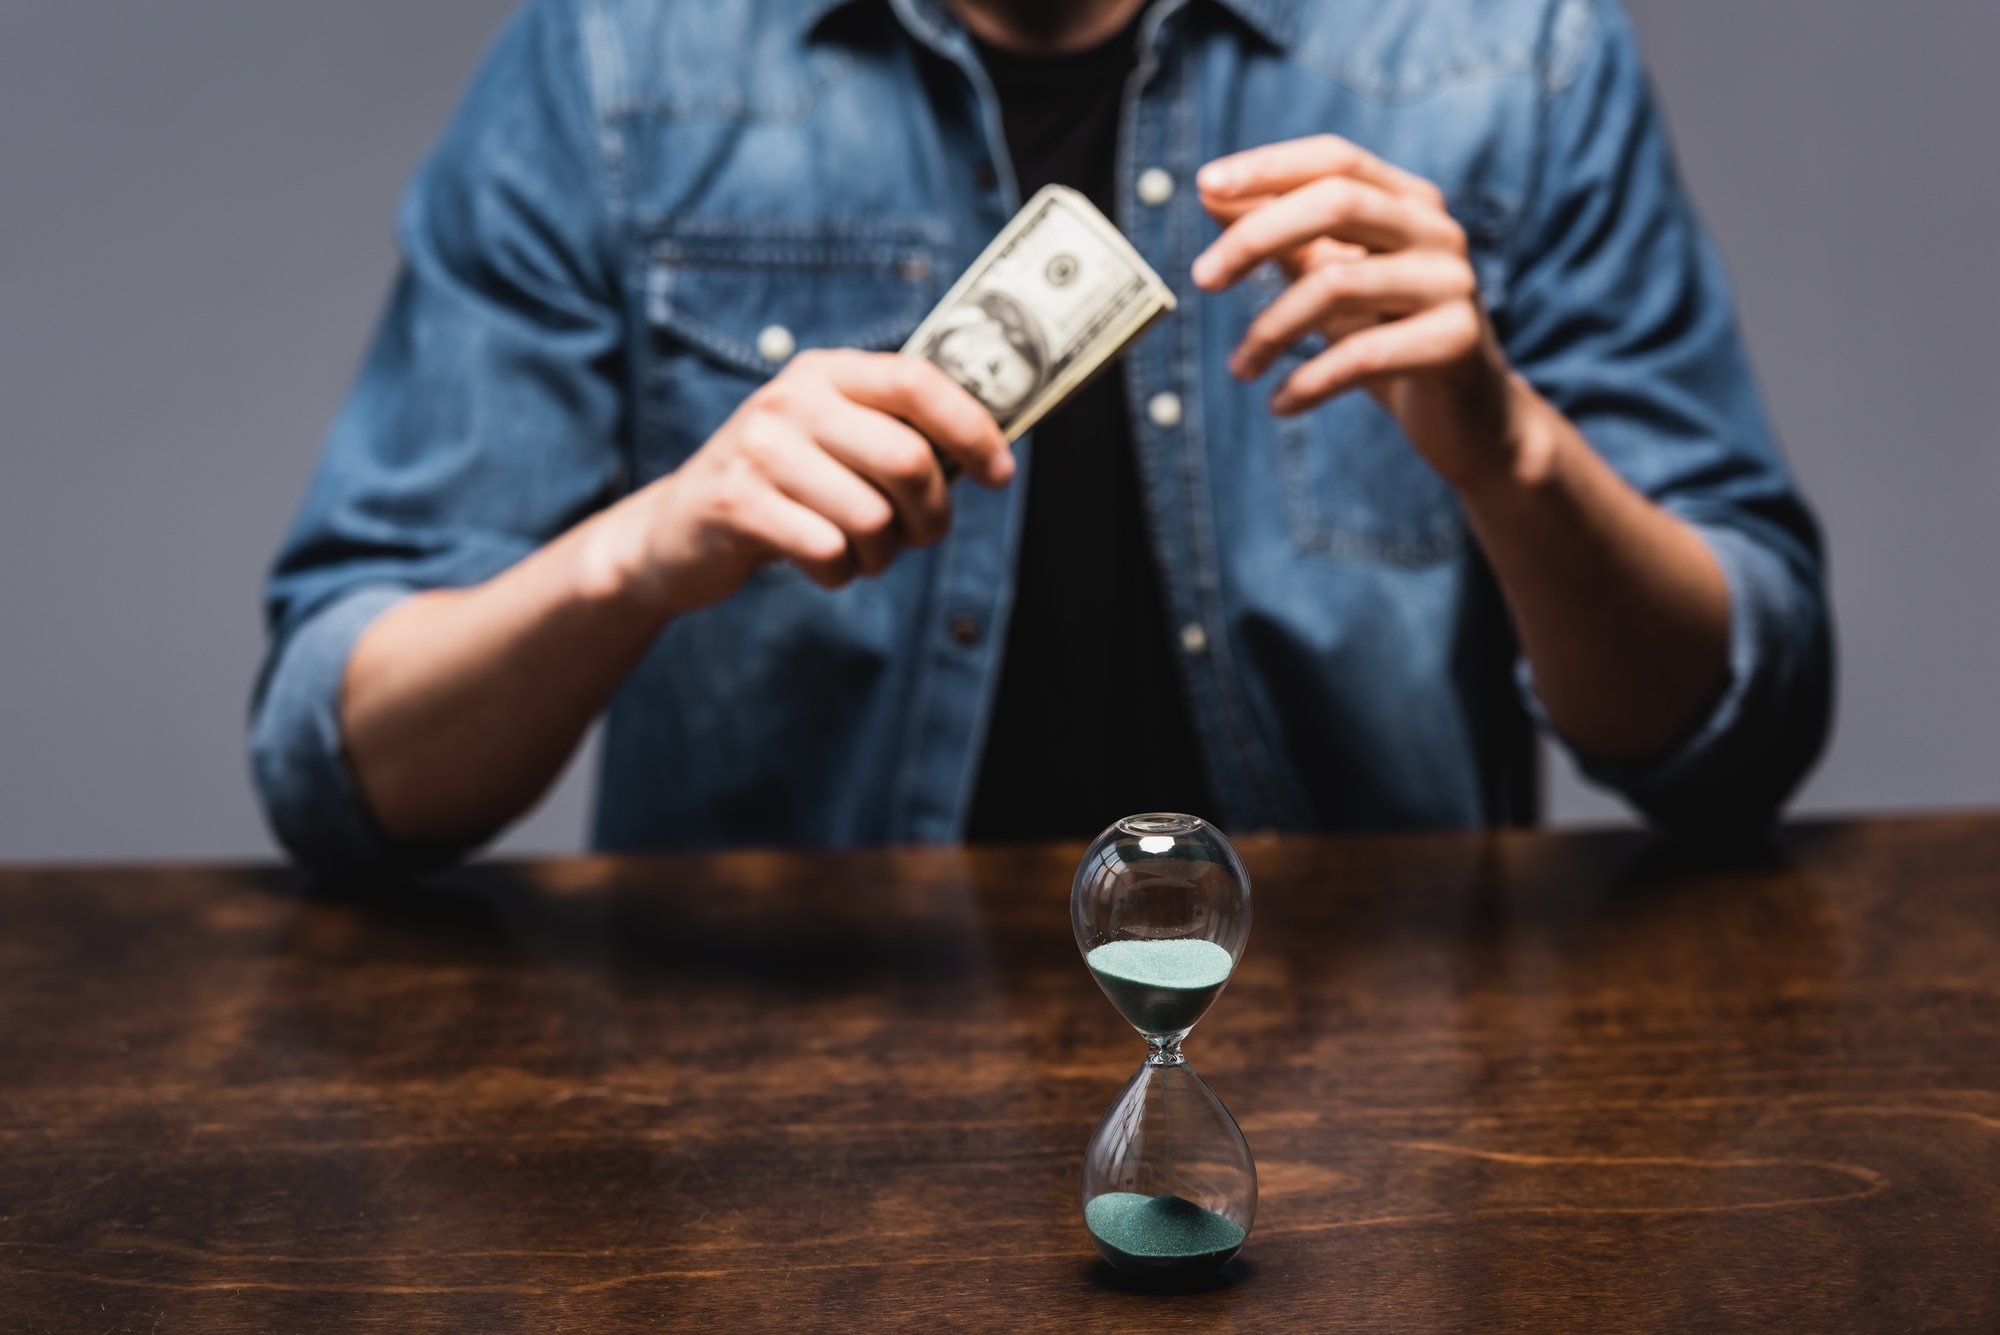 Selective focus of hourglass near man holding dollars while sitting at table isolated on grey, concept of time management